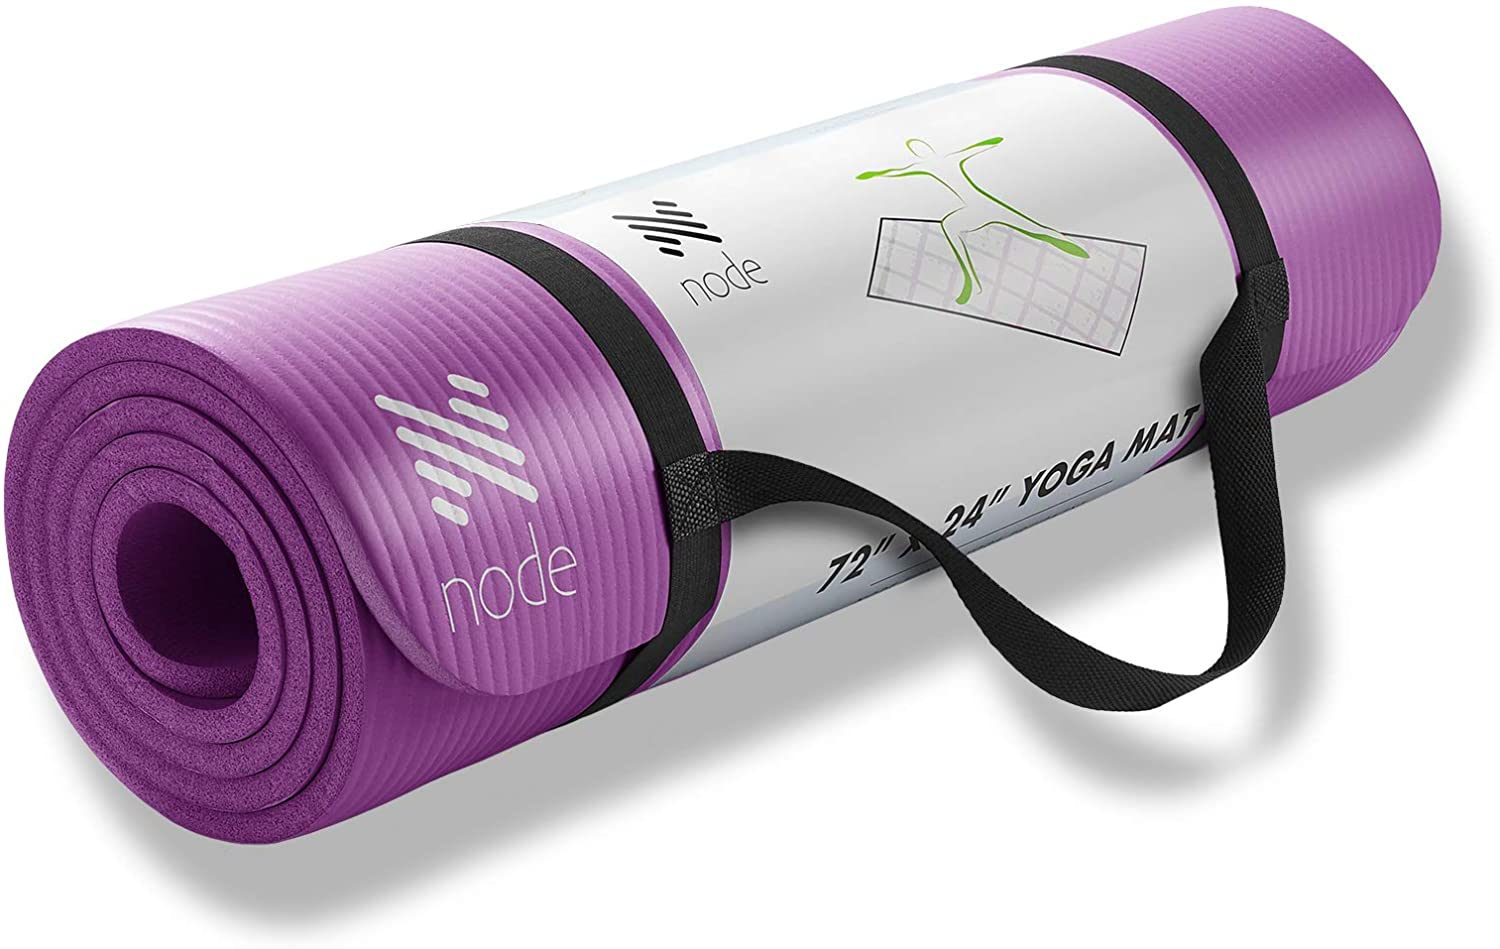 Node Fitness 72 x 24 Yoga Mat – 1 2 Extra Thick with Carrying Strap